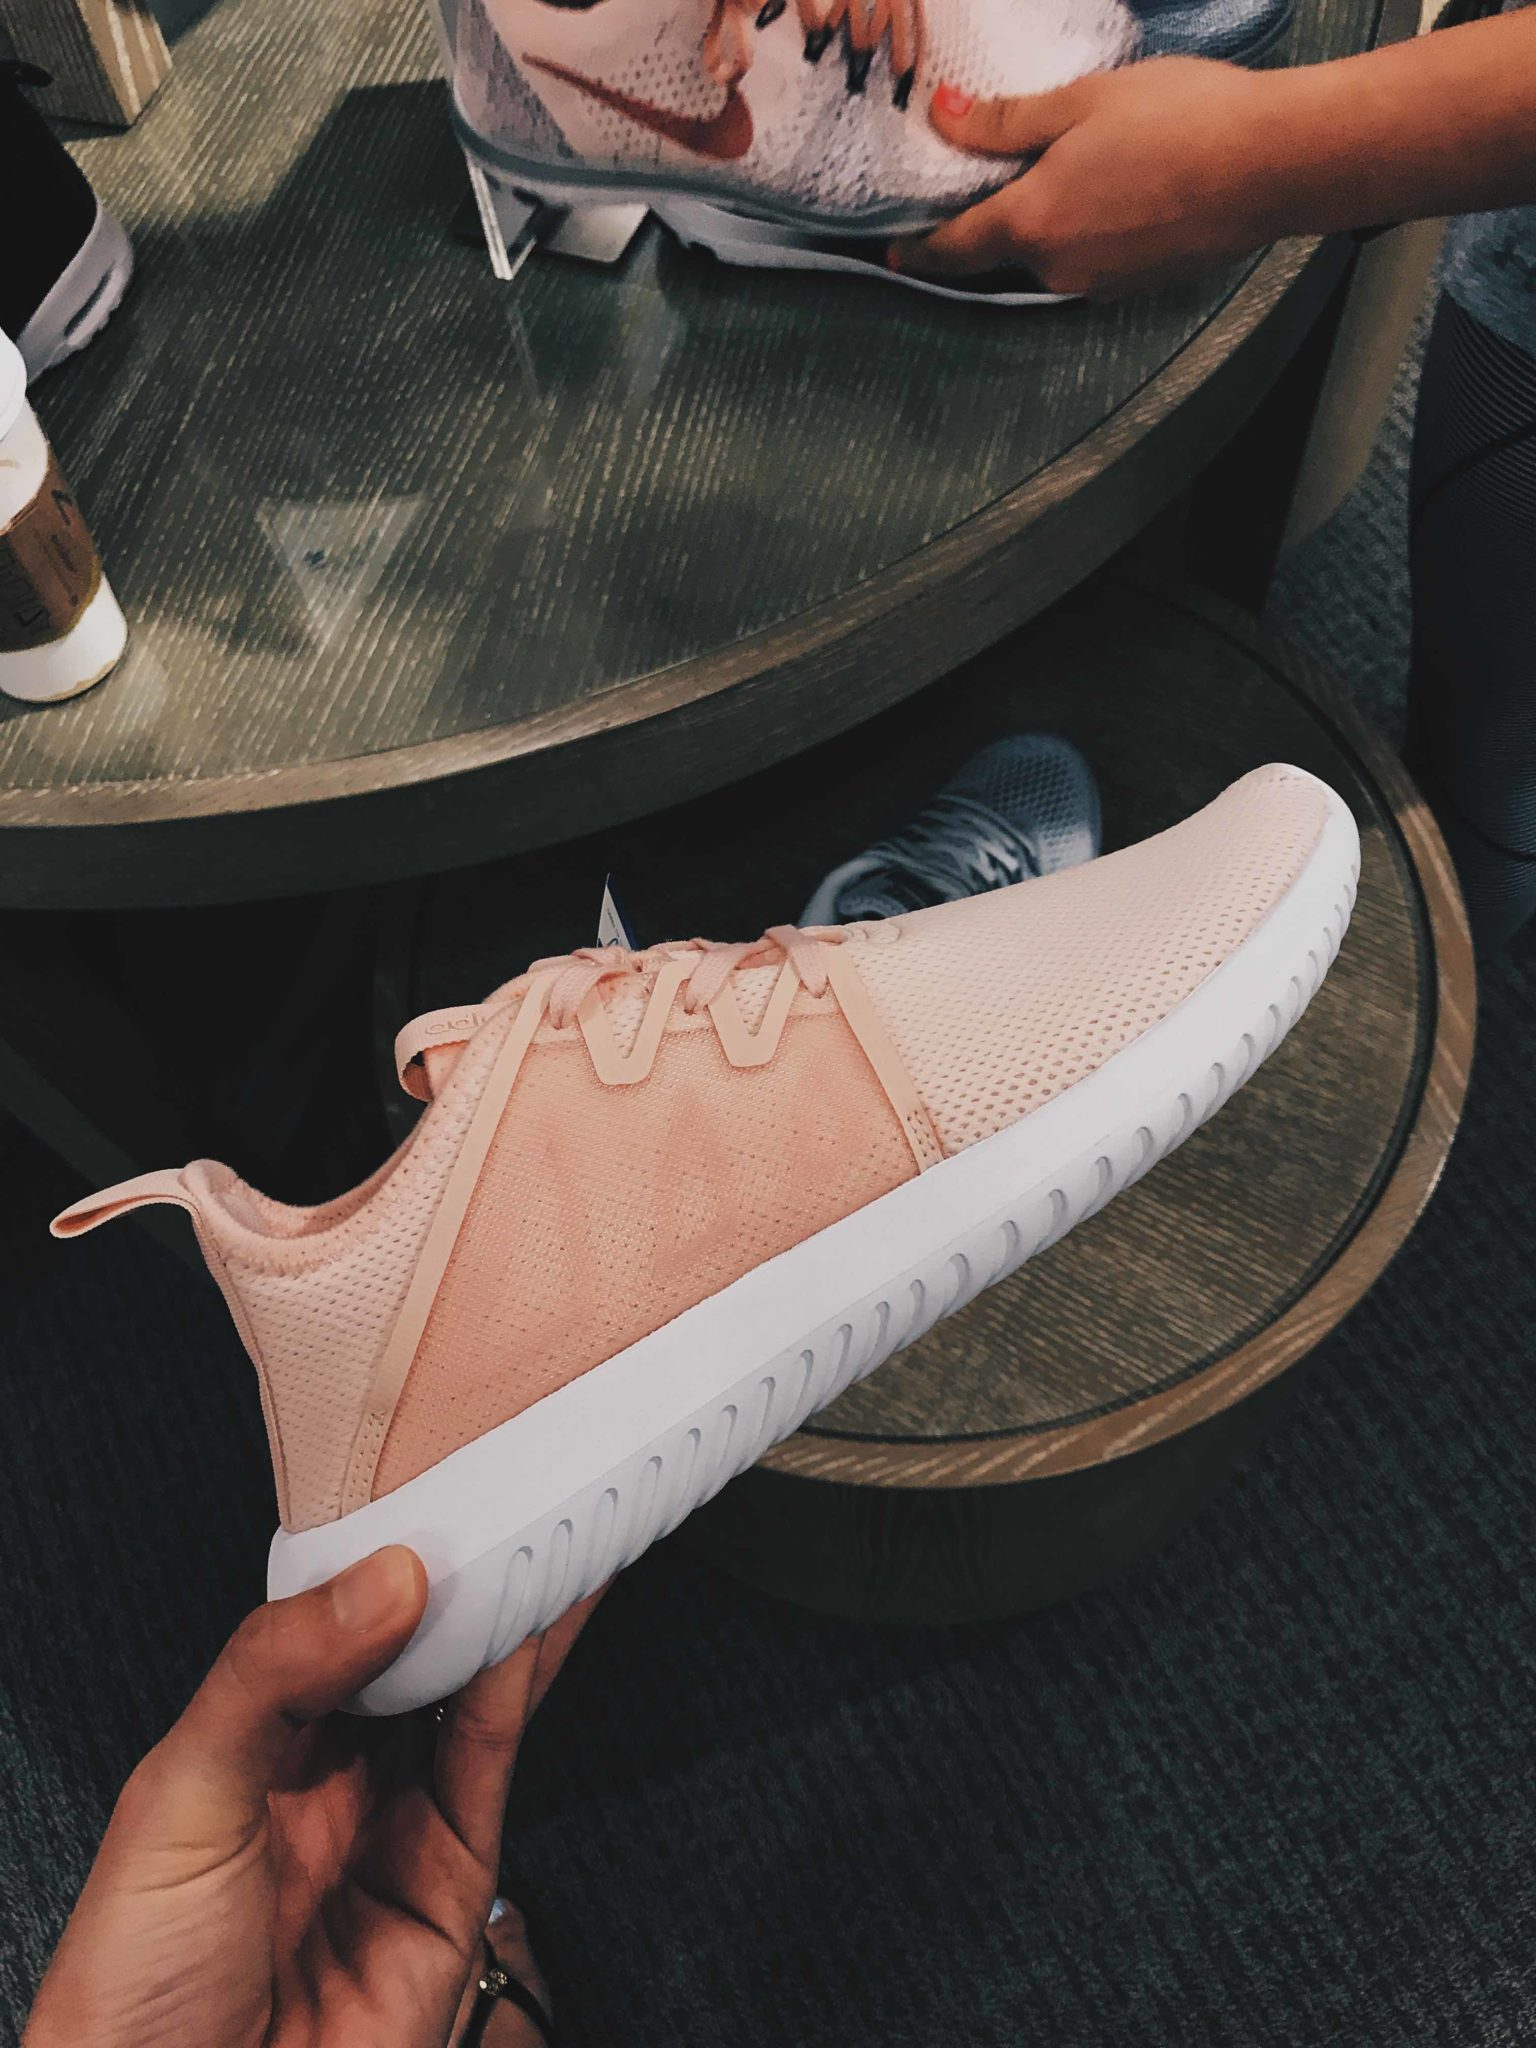 Austin Blogger DTKAustin is sharing her top must-have pieces from the 2017 Nordstrom Anniversary Sale. Pink Adidas Tubular Sneakers | nordstrom sale must haves | what to buy from the nordstrom anniversary sale || Dressed to Kill